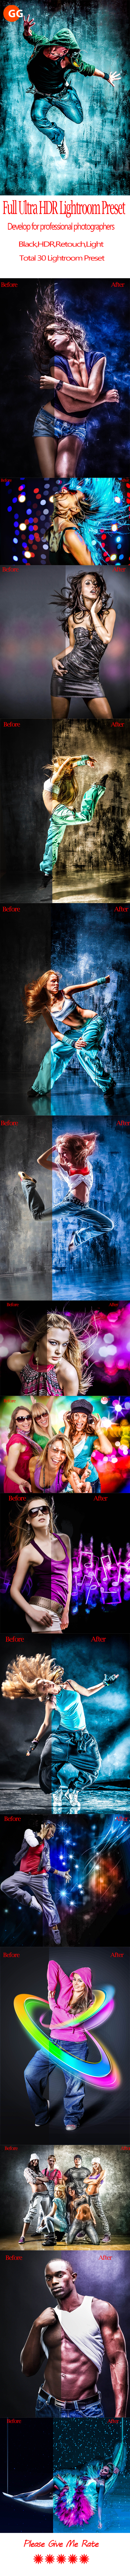 GraphicRiver 30 Full Ultra HDR Lightroom Preset 21189889